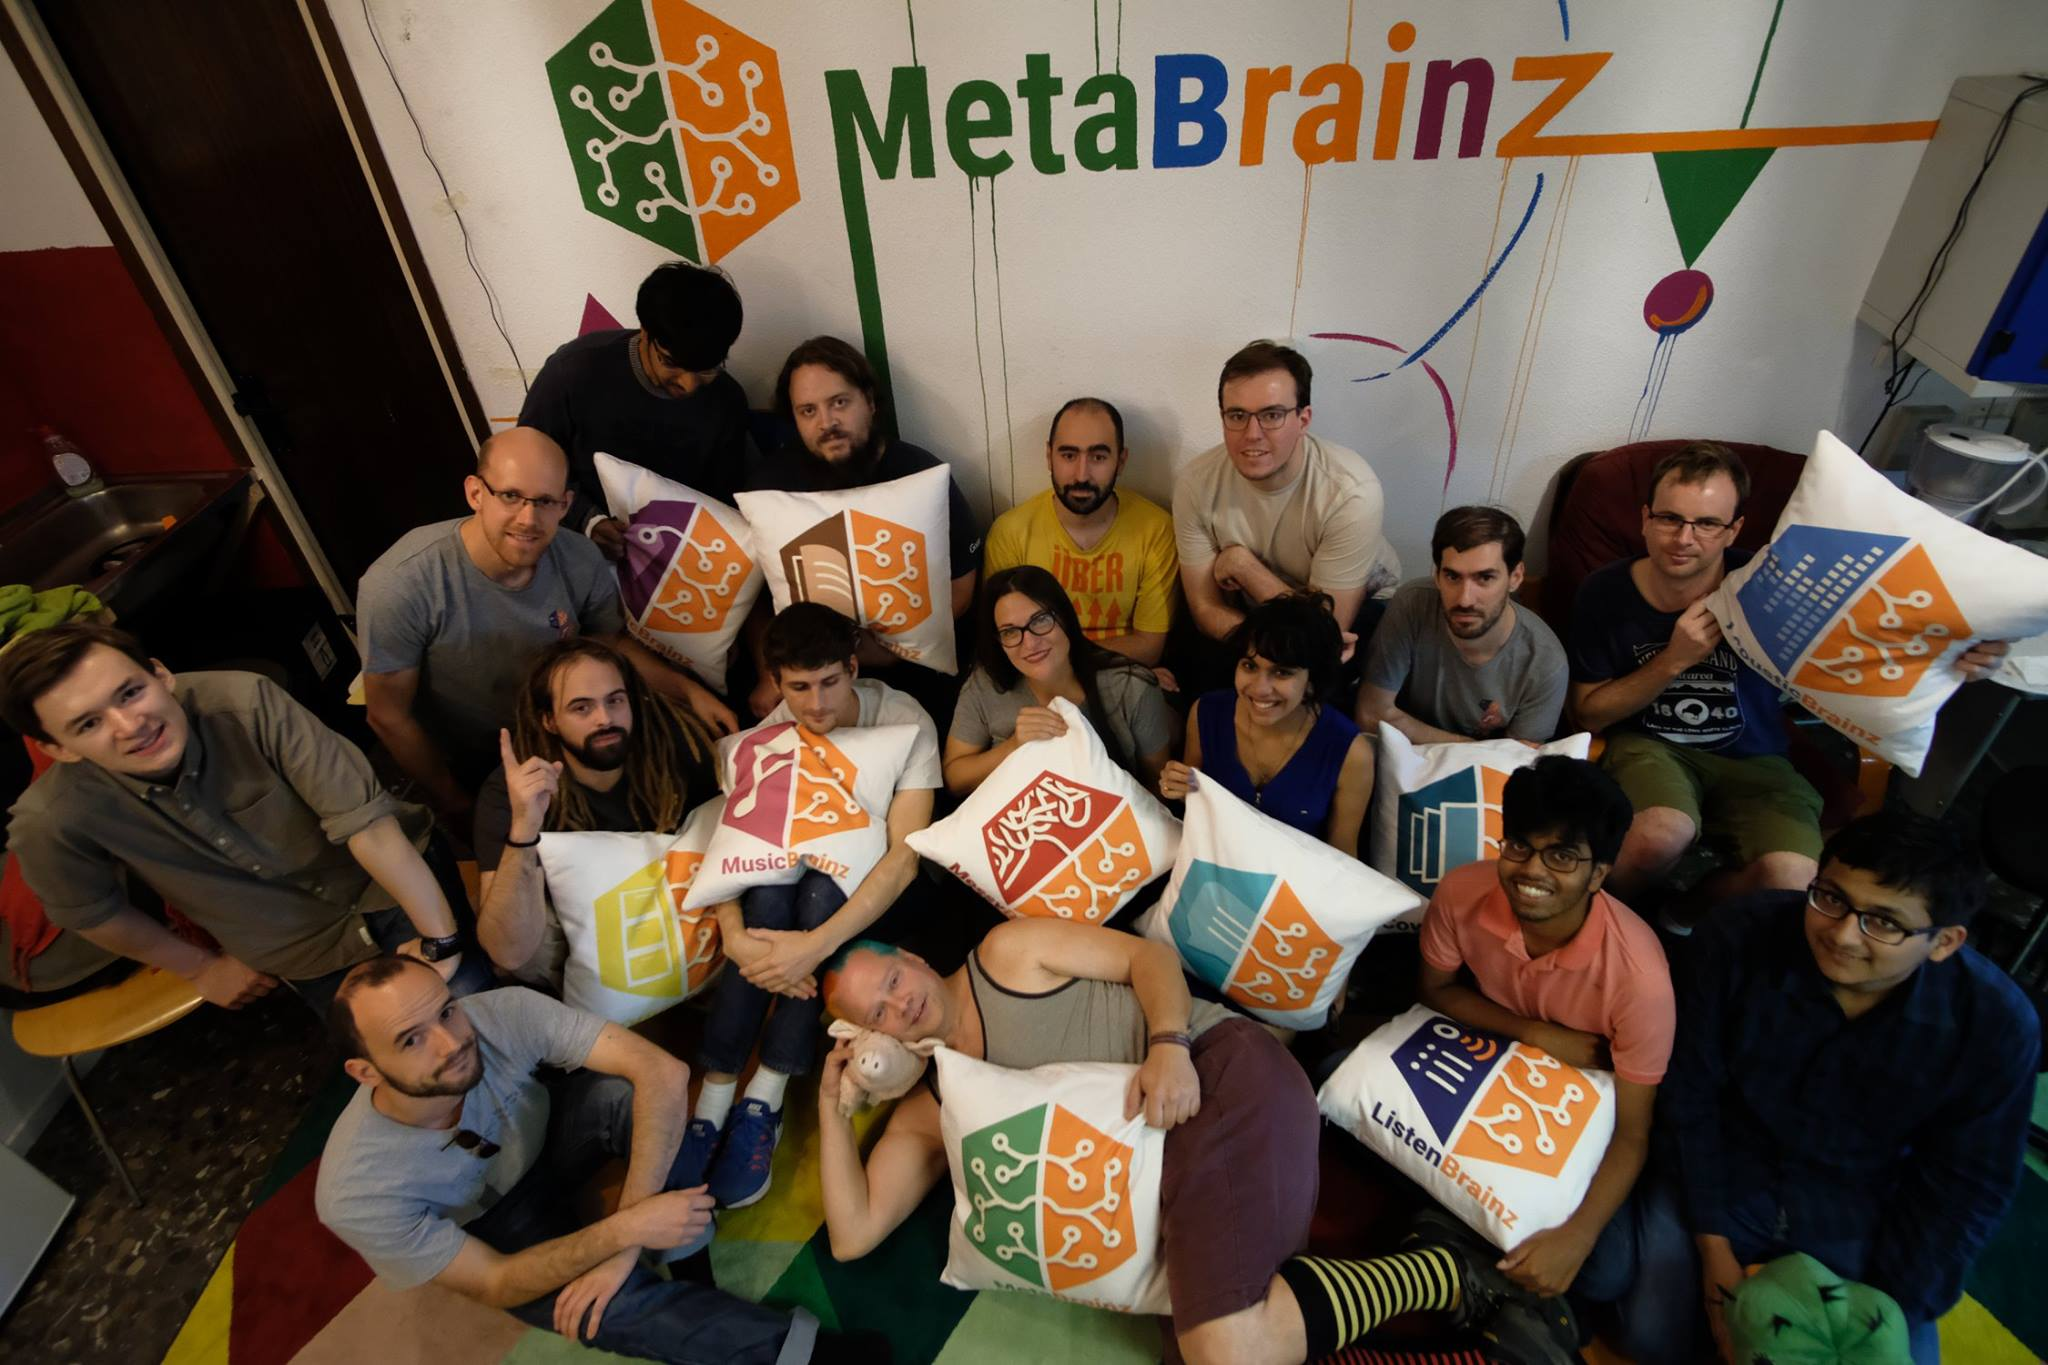 Summit participants with *Brainz pillows